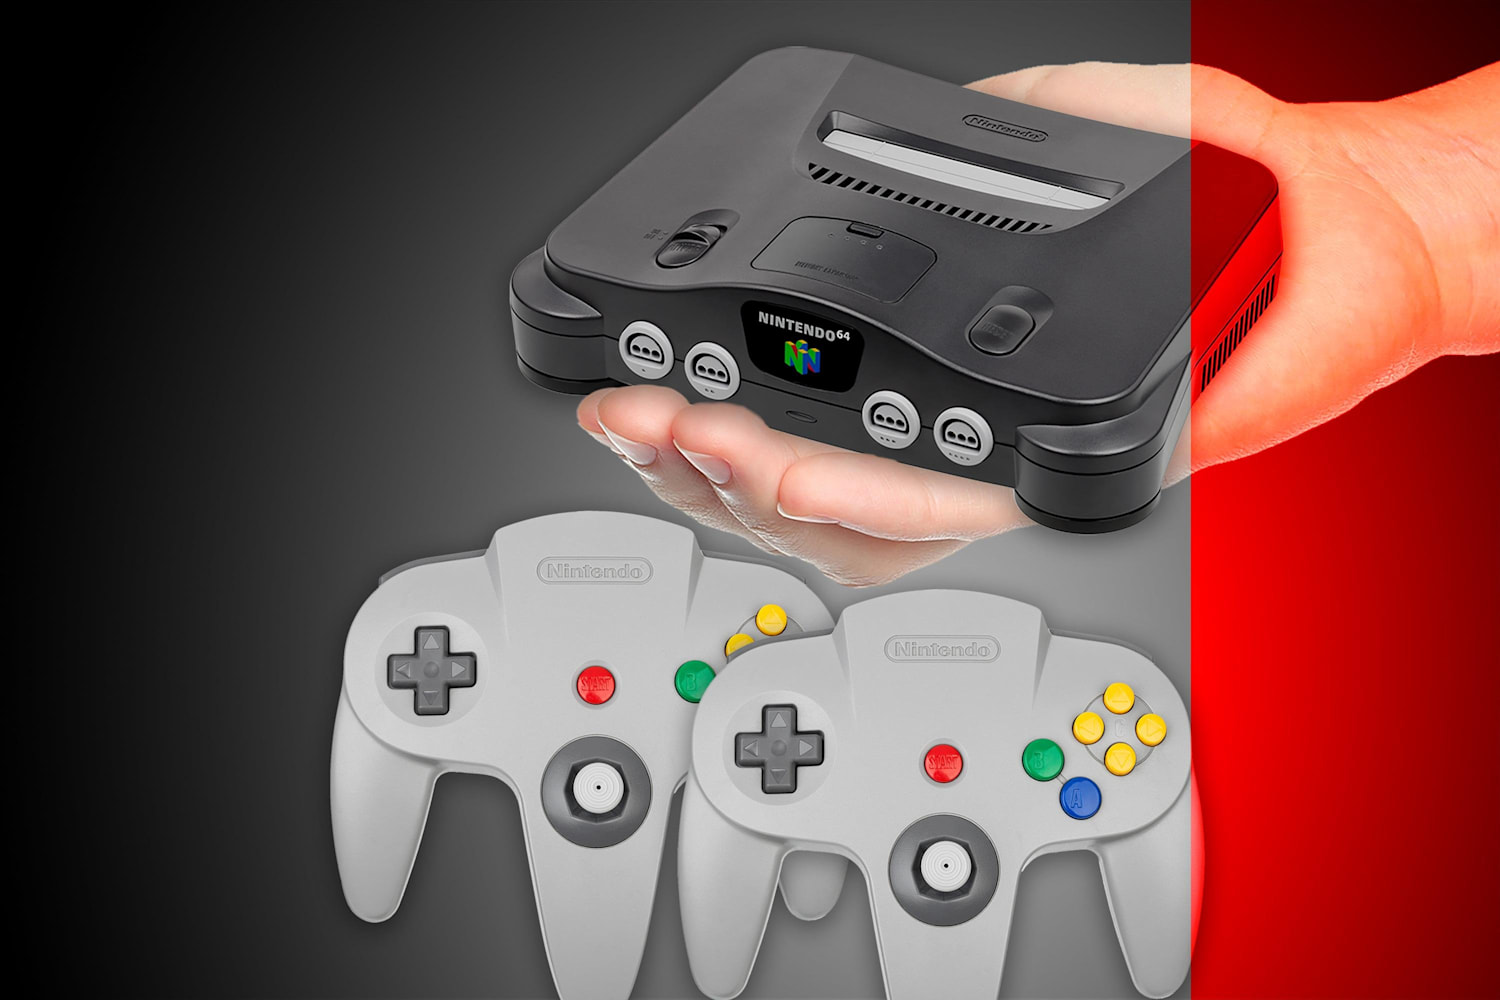 Nintendo 64 Classic: The N64 games we want to see